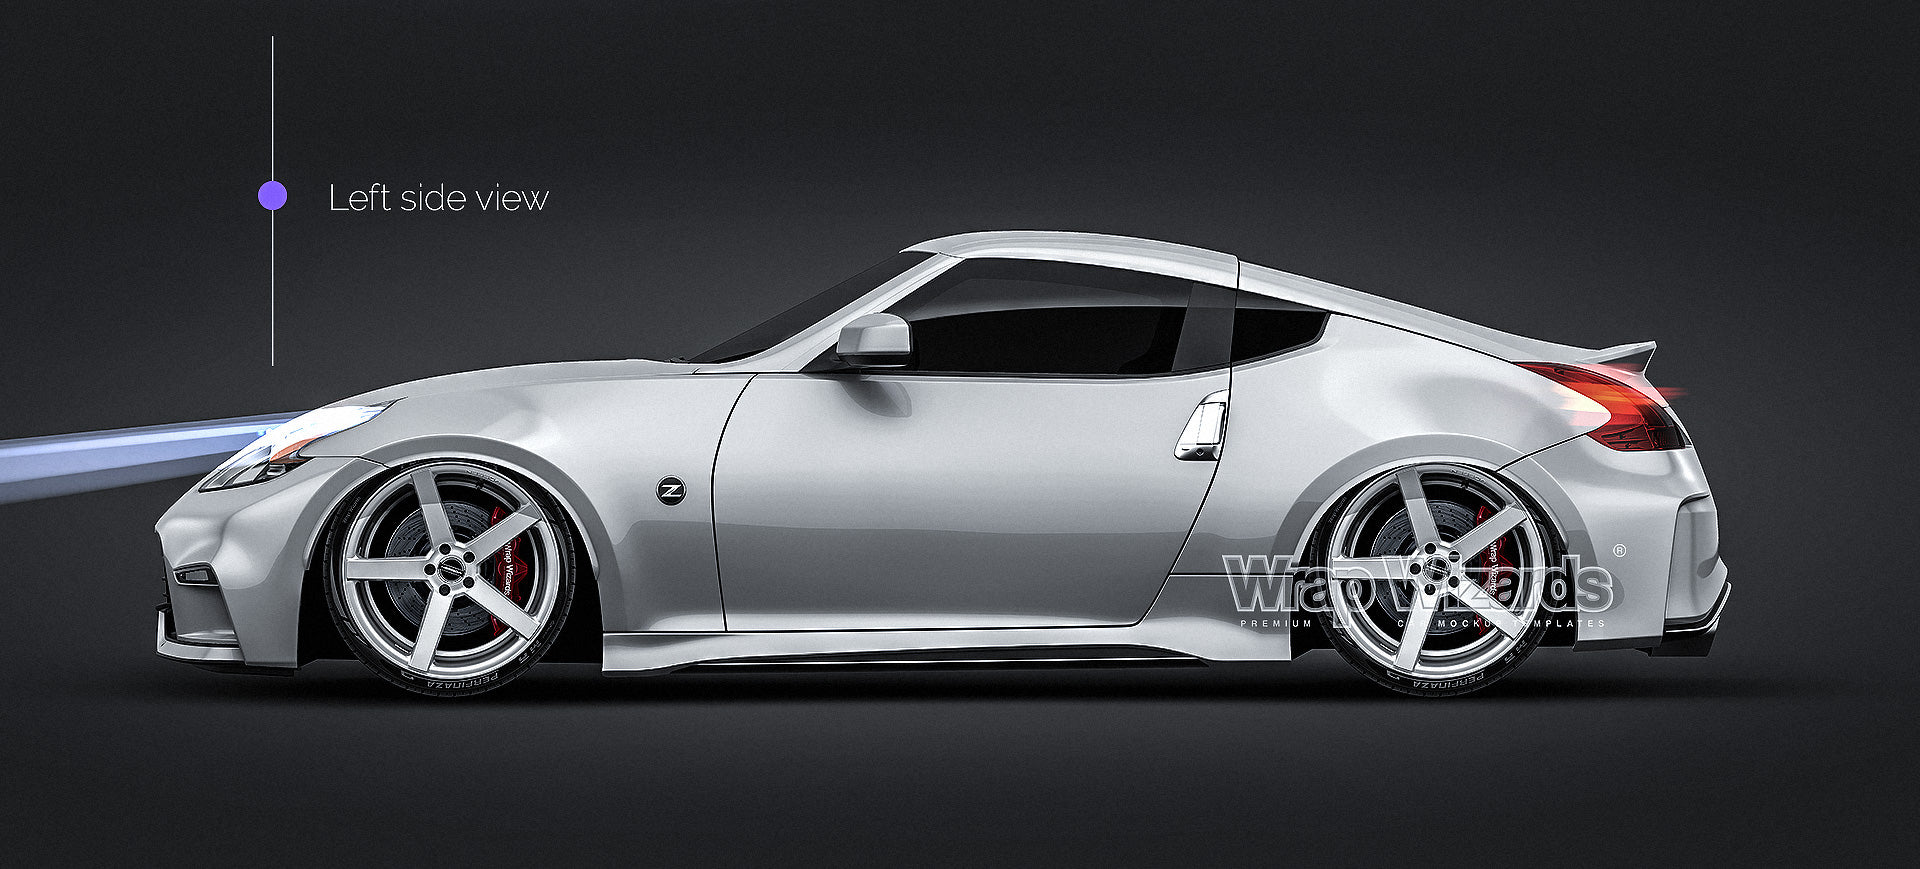 Nissan 370z Nismo 2015 glossy finish - all sides Car Mockup Template.psd